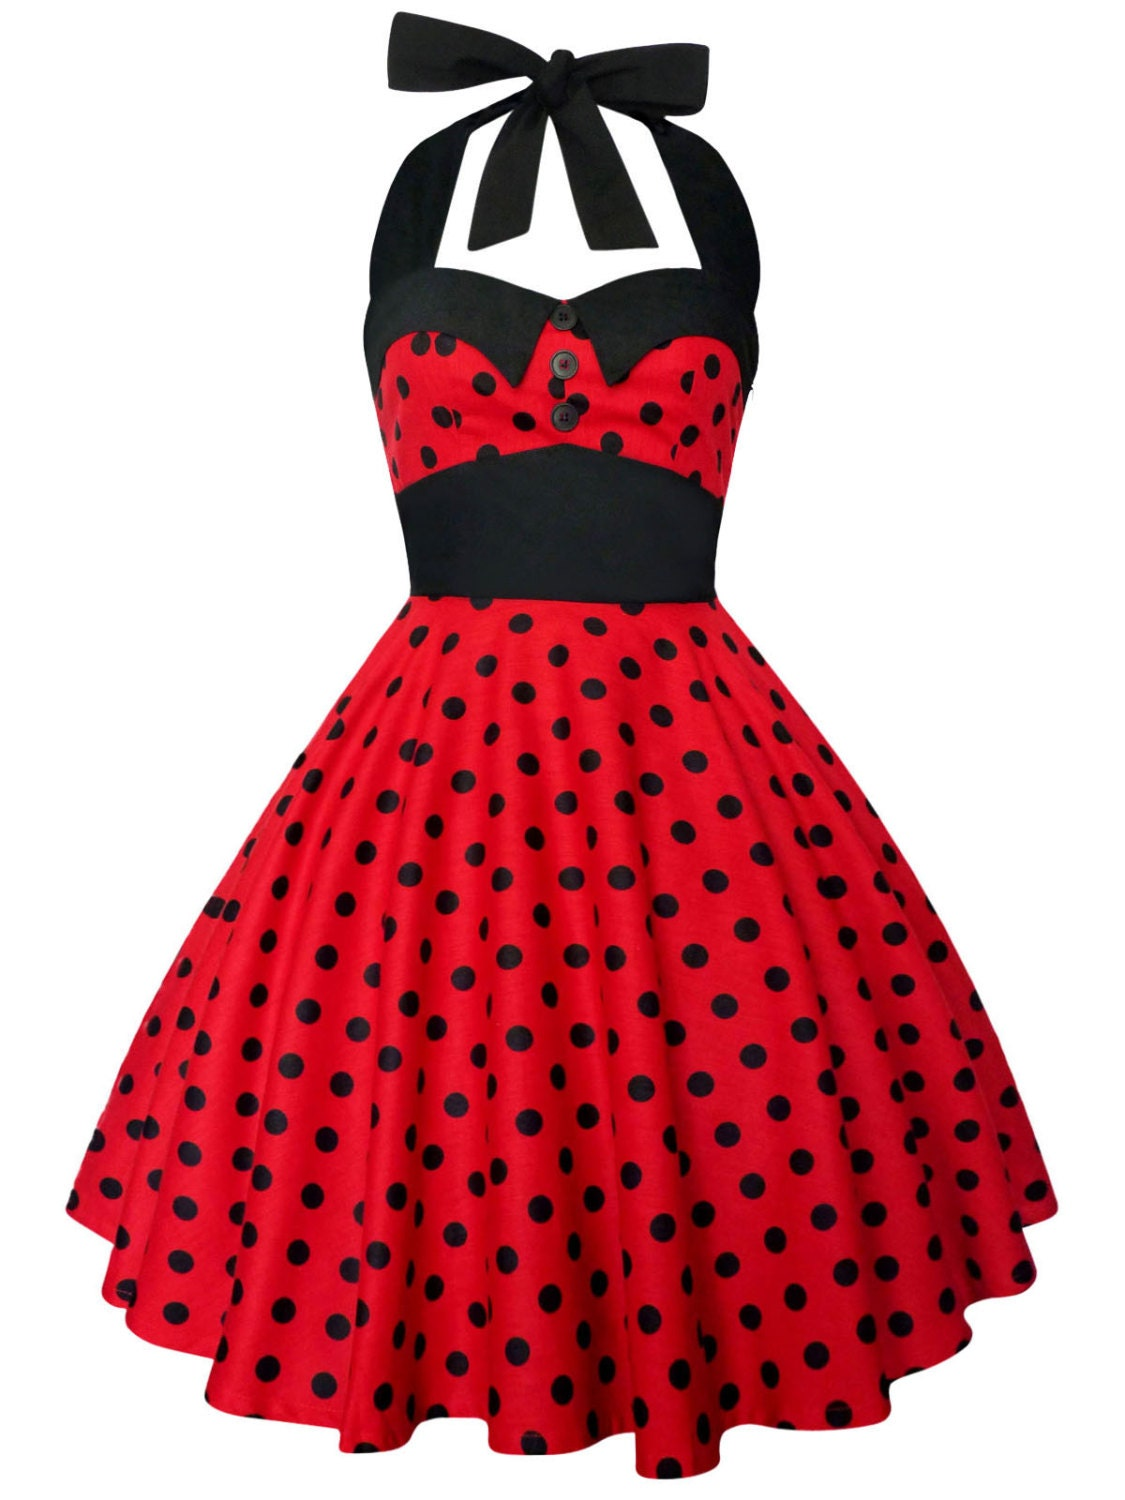 447de1a9b537d Lady Mayra Ashley Polka Dot Dress Vintage Rockabilly Pin Up 1950s Retro  Style Gothic Lolita Steampunk Swing Prom Party Plus Size Clothing